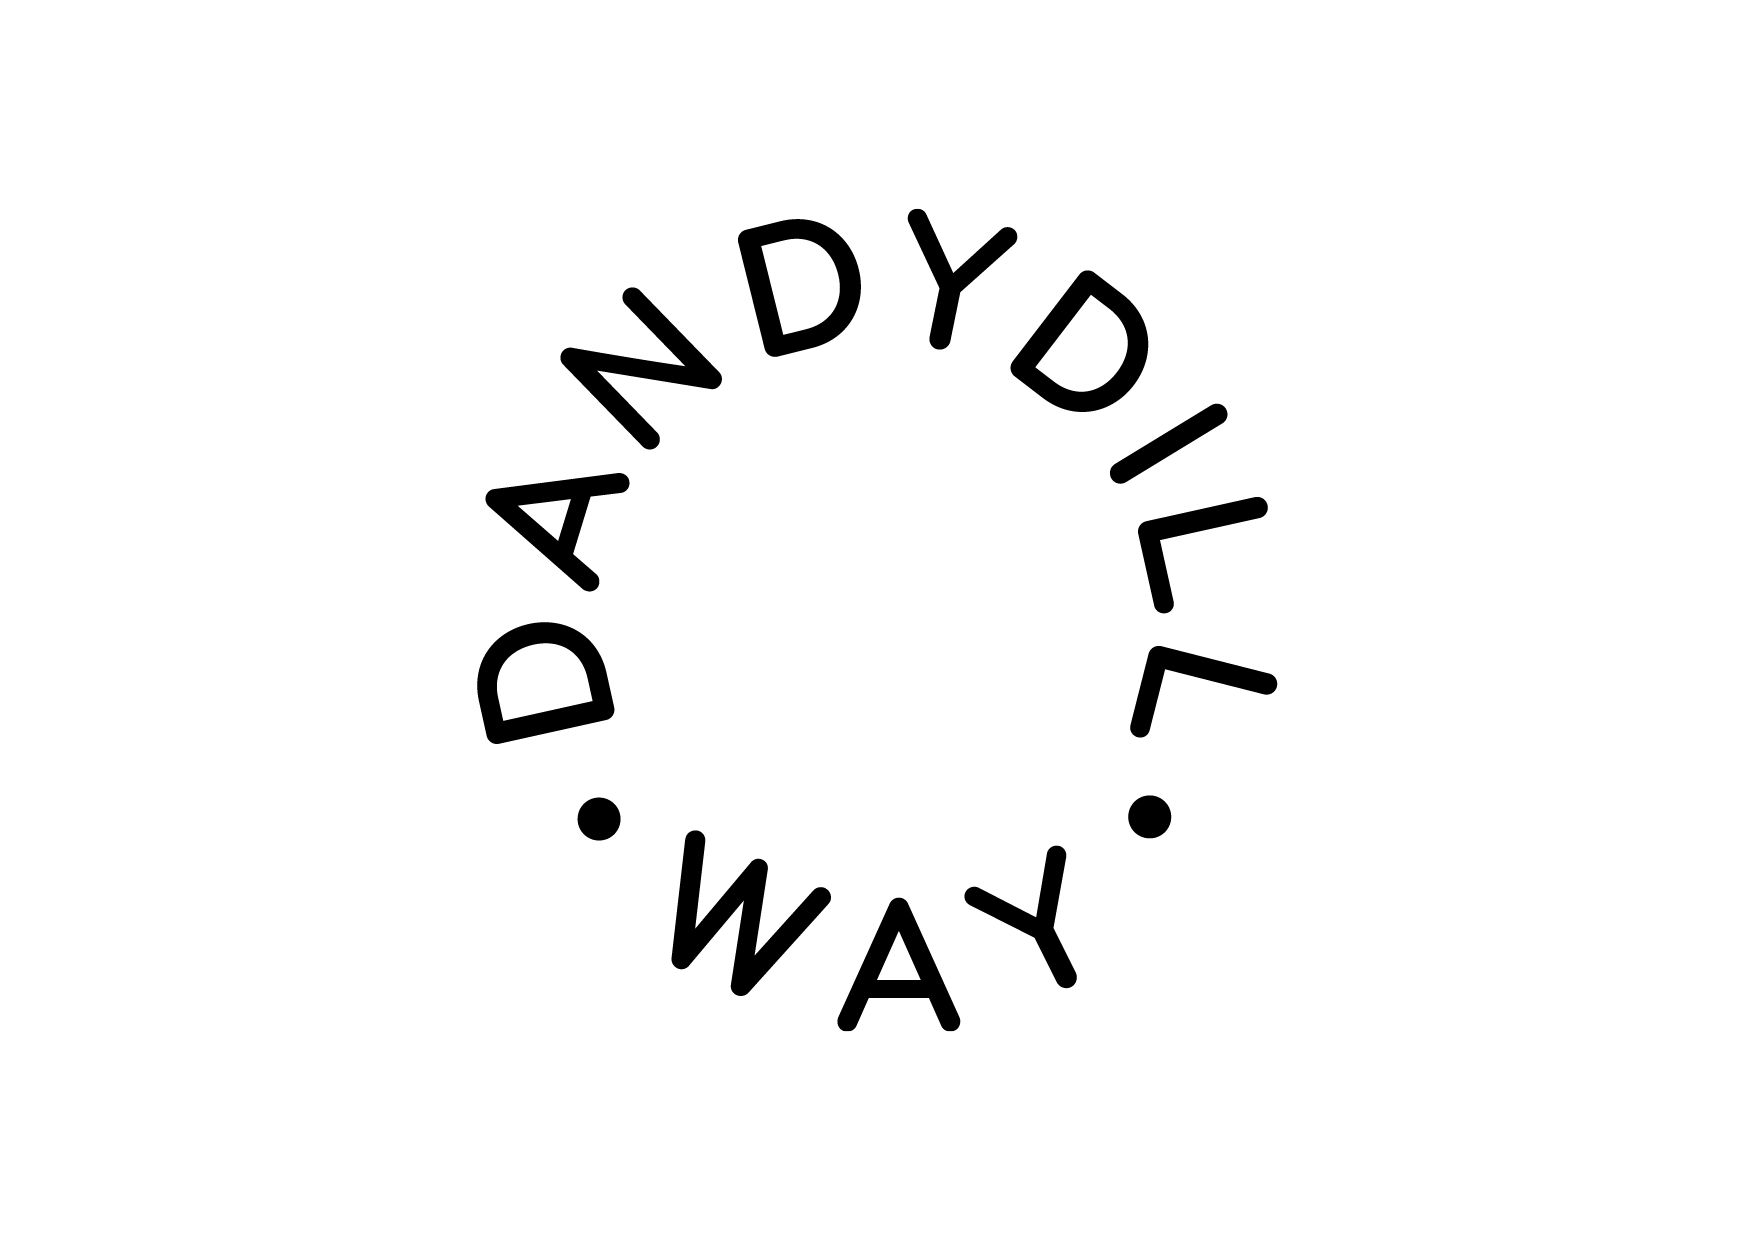 Dandydill Way   Art direction, Brand identity 2017   Dandydill Way is a luxurious range of toiletries for children aged 6 months upwards. Formulated and made in England, the natural ingredients are all carefully chosen for their high quality.  The Dandydill Way logotype evokes the dandelion in which the brand rooted its inspiration. The minimal design hints at the natural and trusted formula of the toiletries range. Each product is represented by a bespoke colour drawn from our English landscape palette.